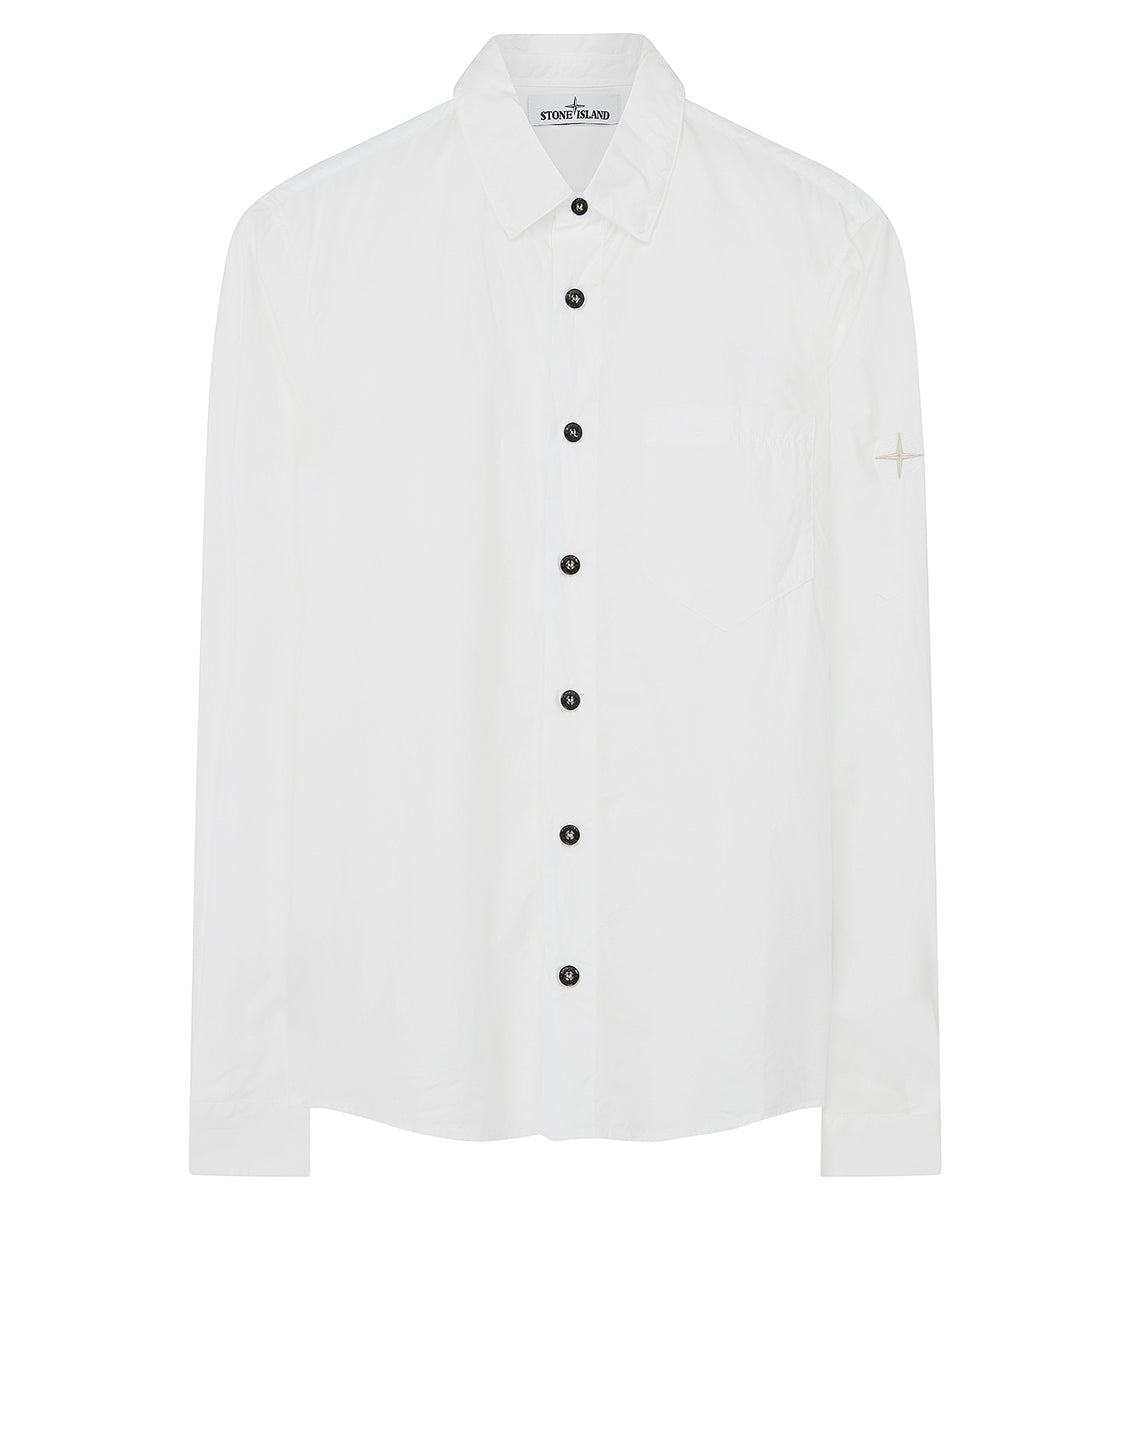 12501 Long-sleeve Shirt in White